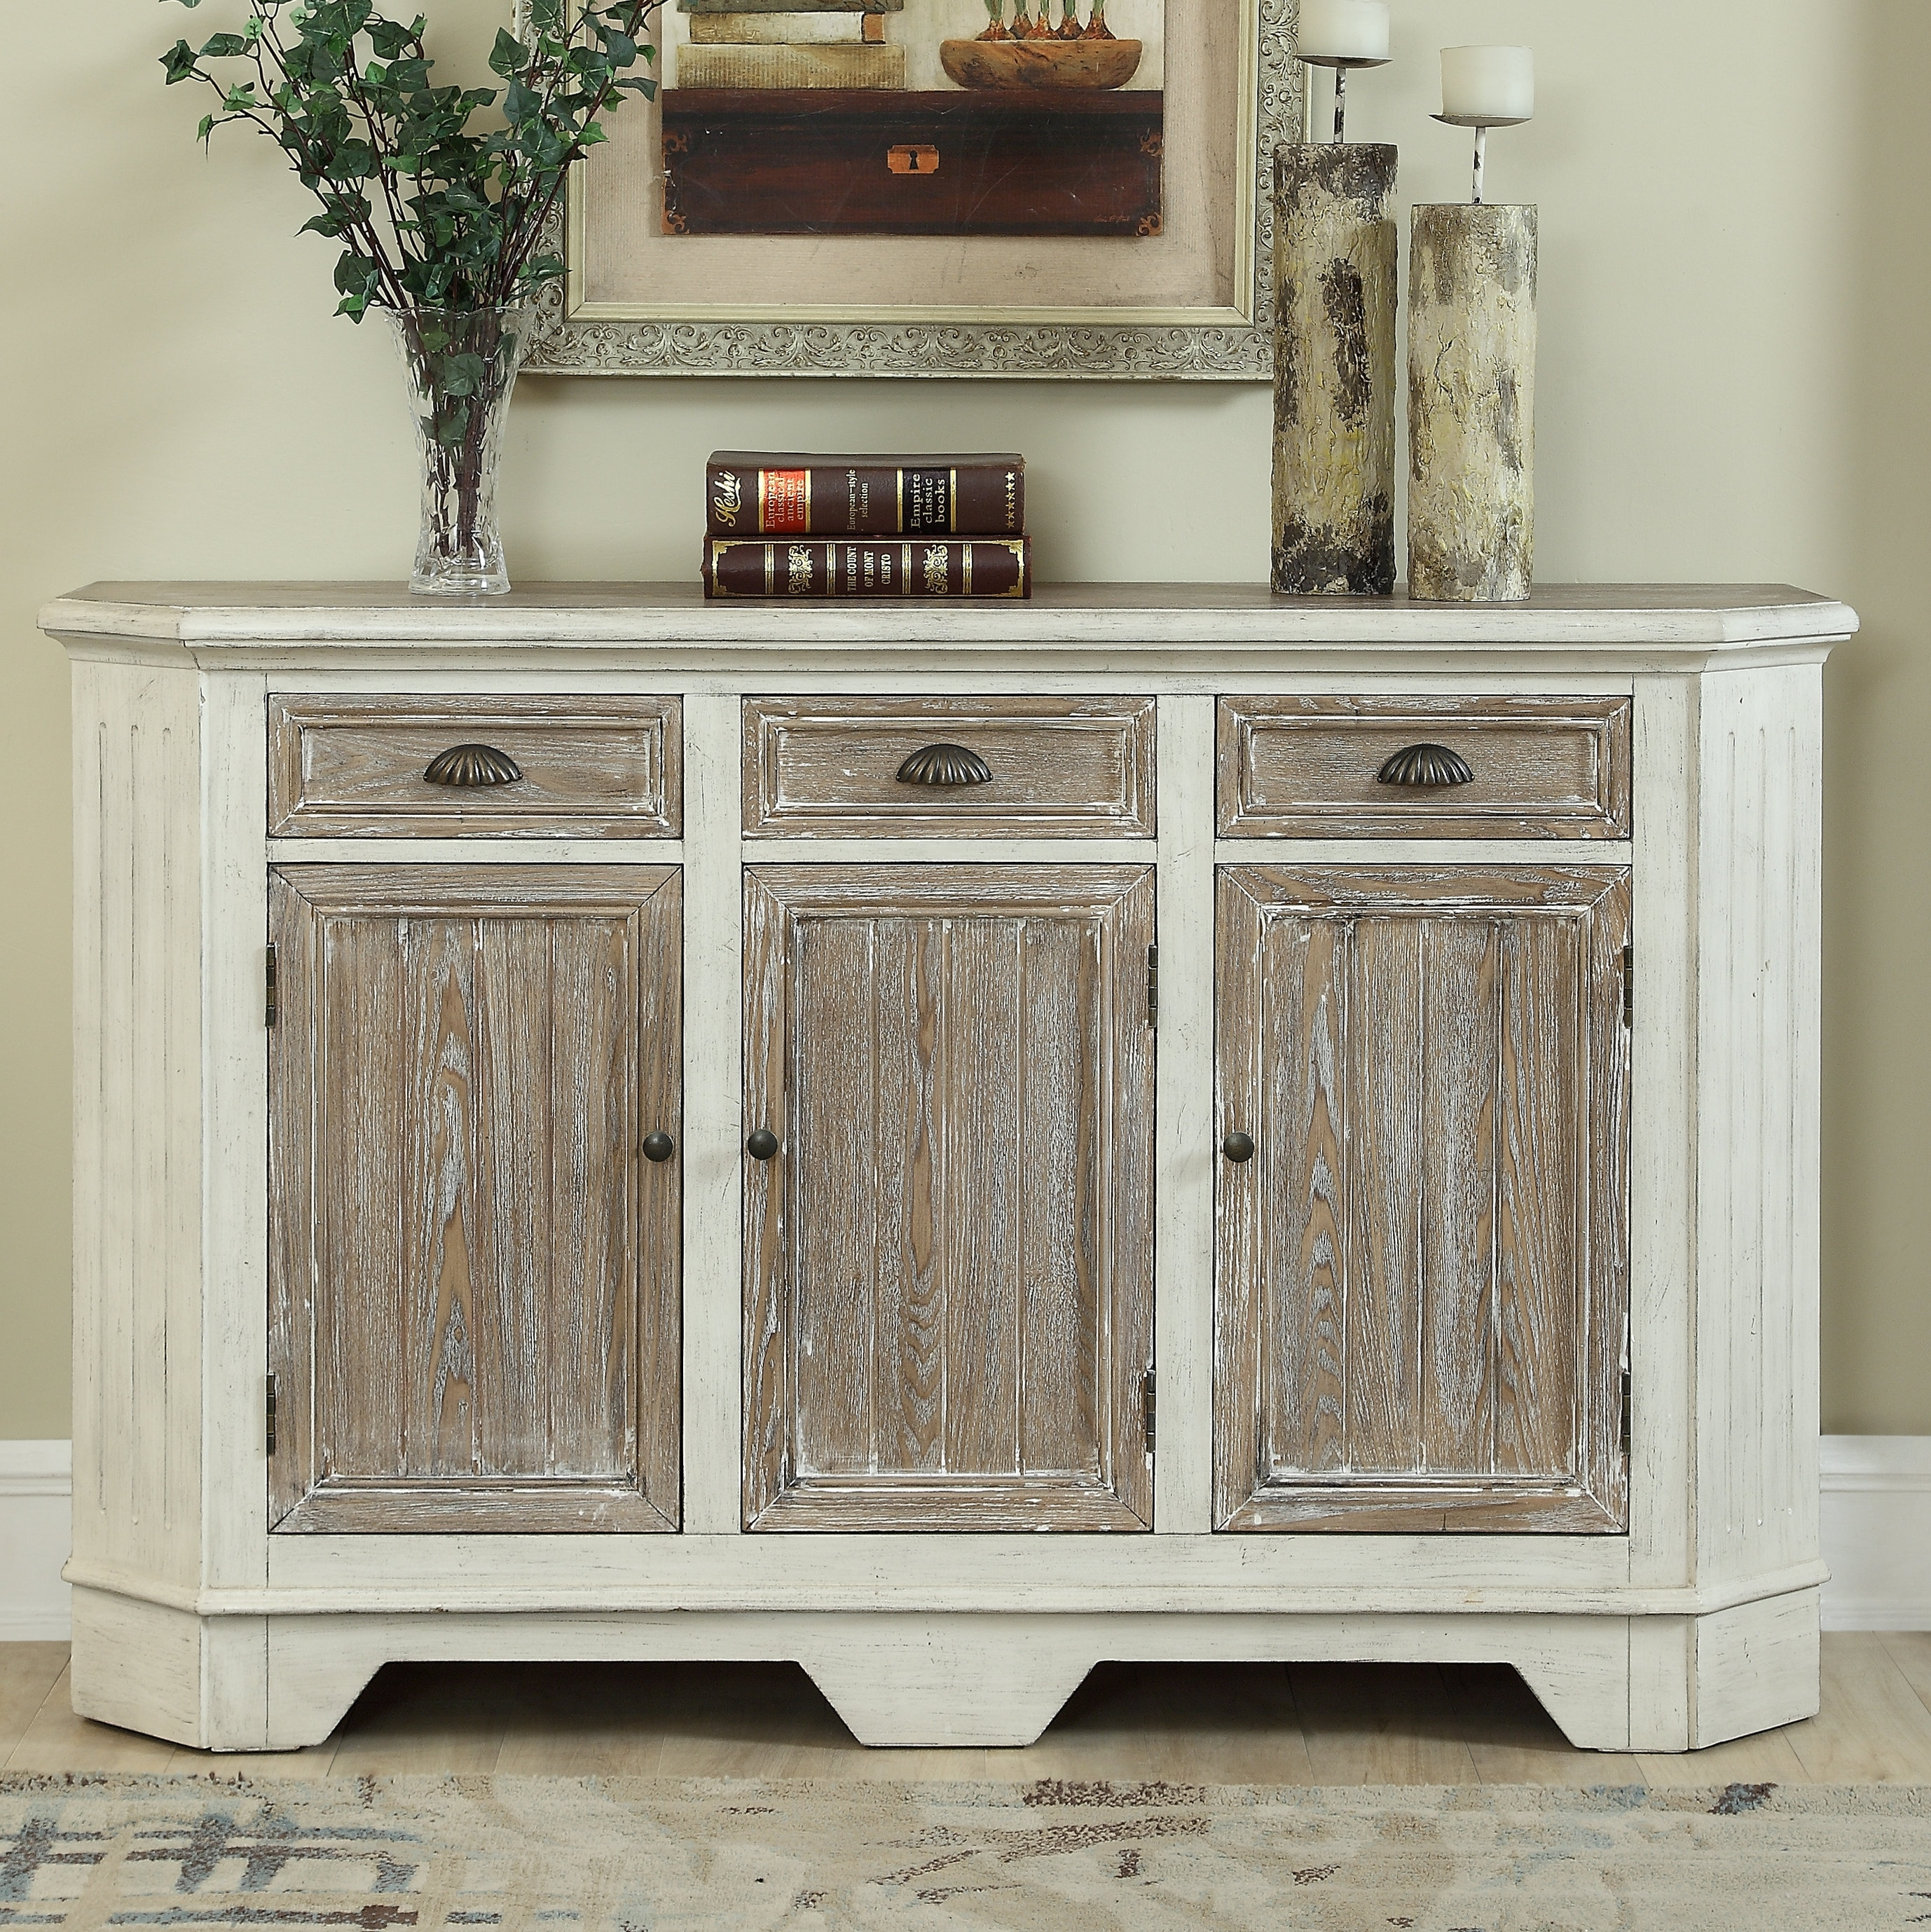 Highland Dunes Funkhouser 3 Door 3 Drawer Sideboard | Wayfair with Solar Refinement Sideboards (Image 13 of 30)